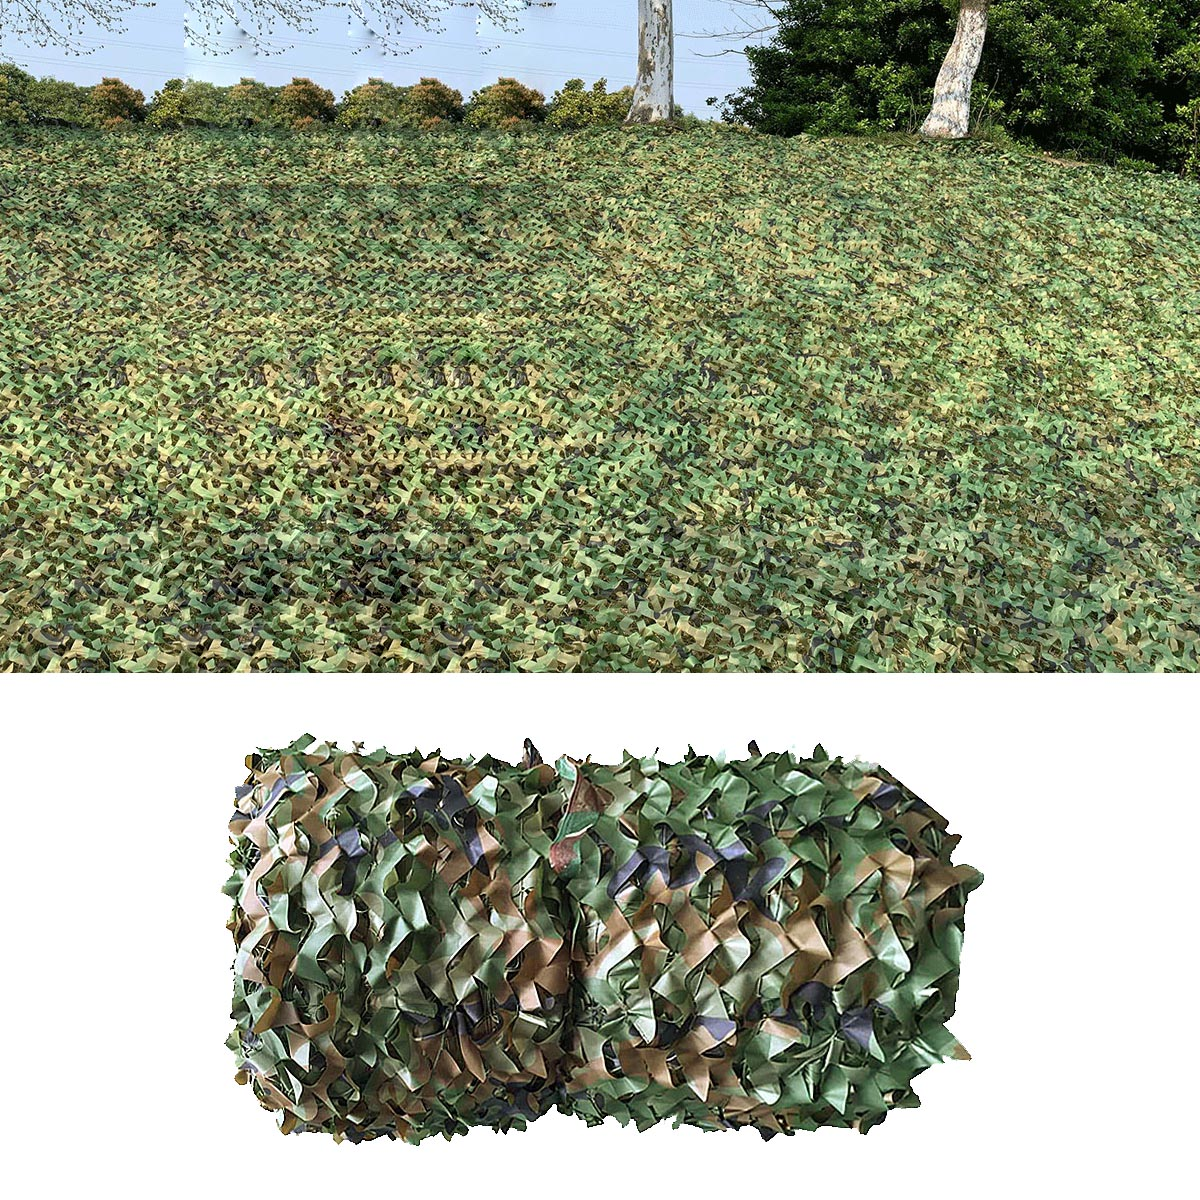 1X1m To 2X12m Camping Camouflage Nets Mesh Woodland Jungle Camo Net Hunting Shooting Fishing Shelter Hide Netting